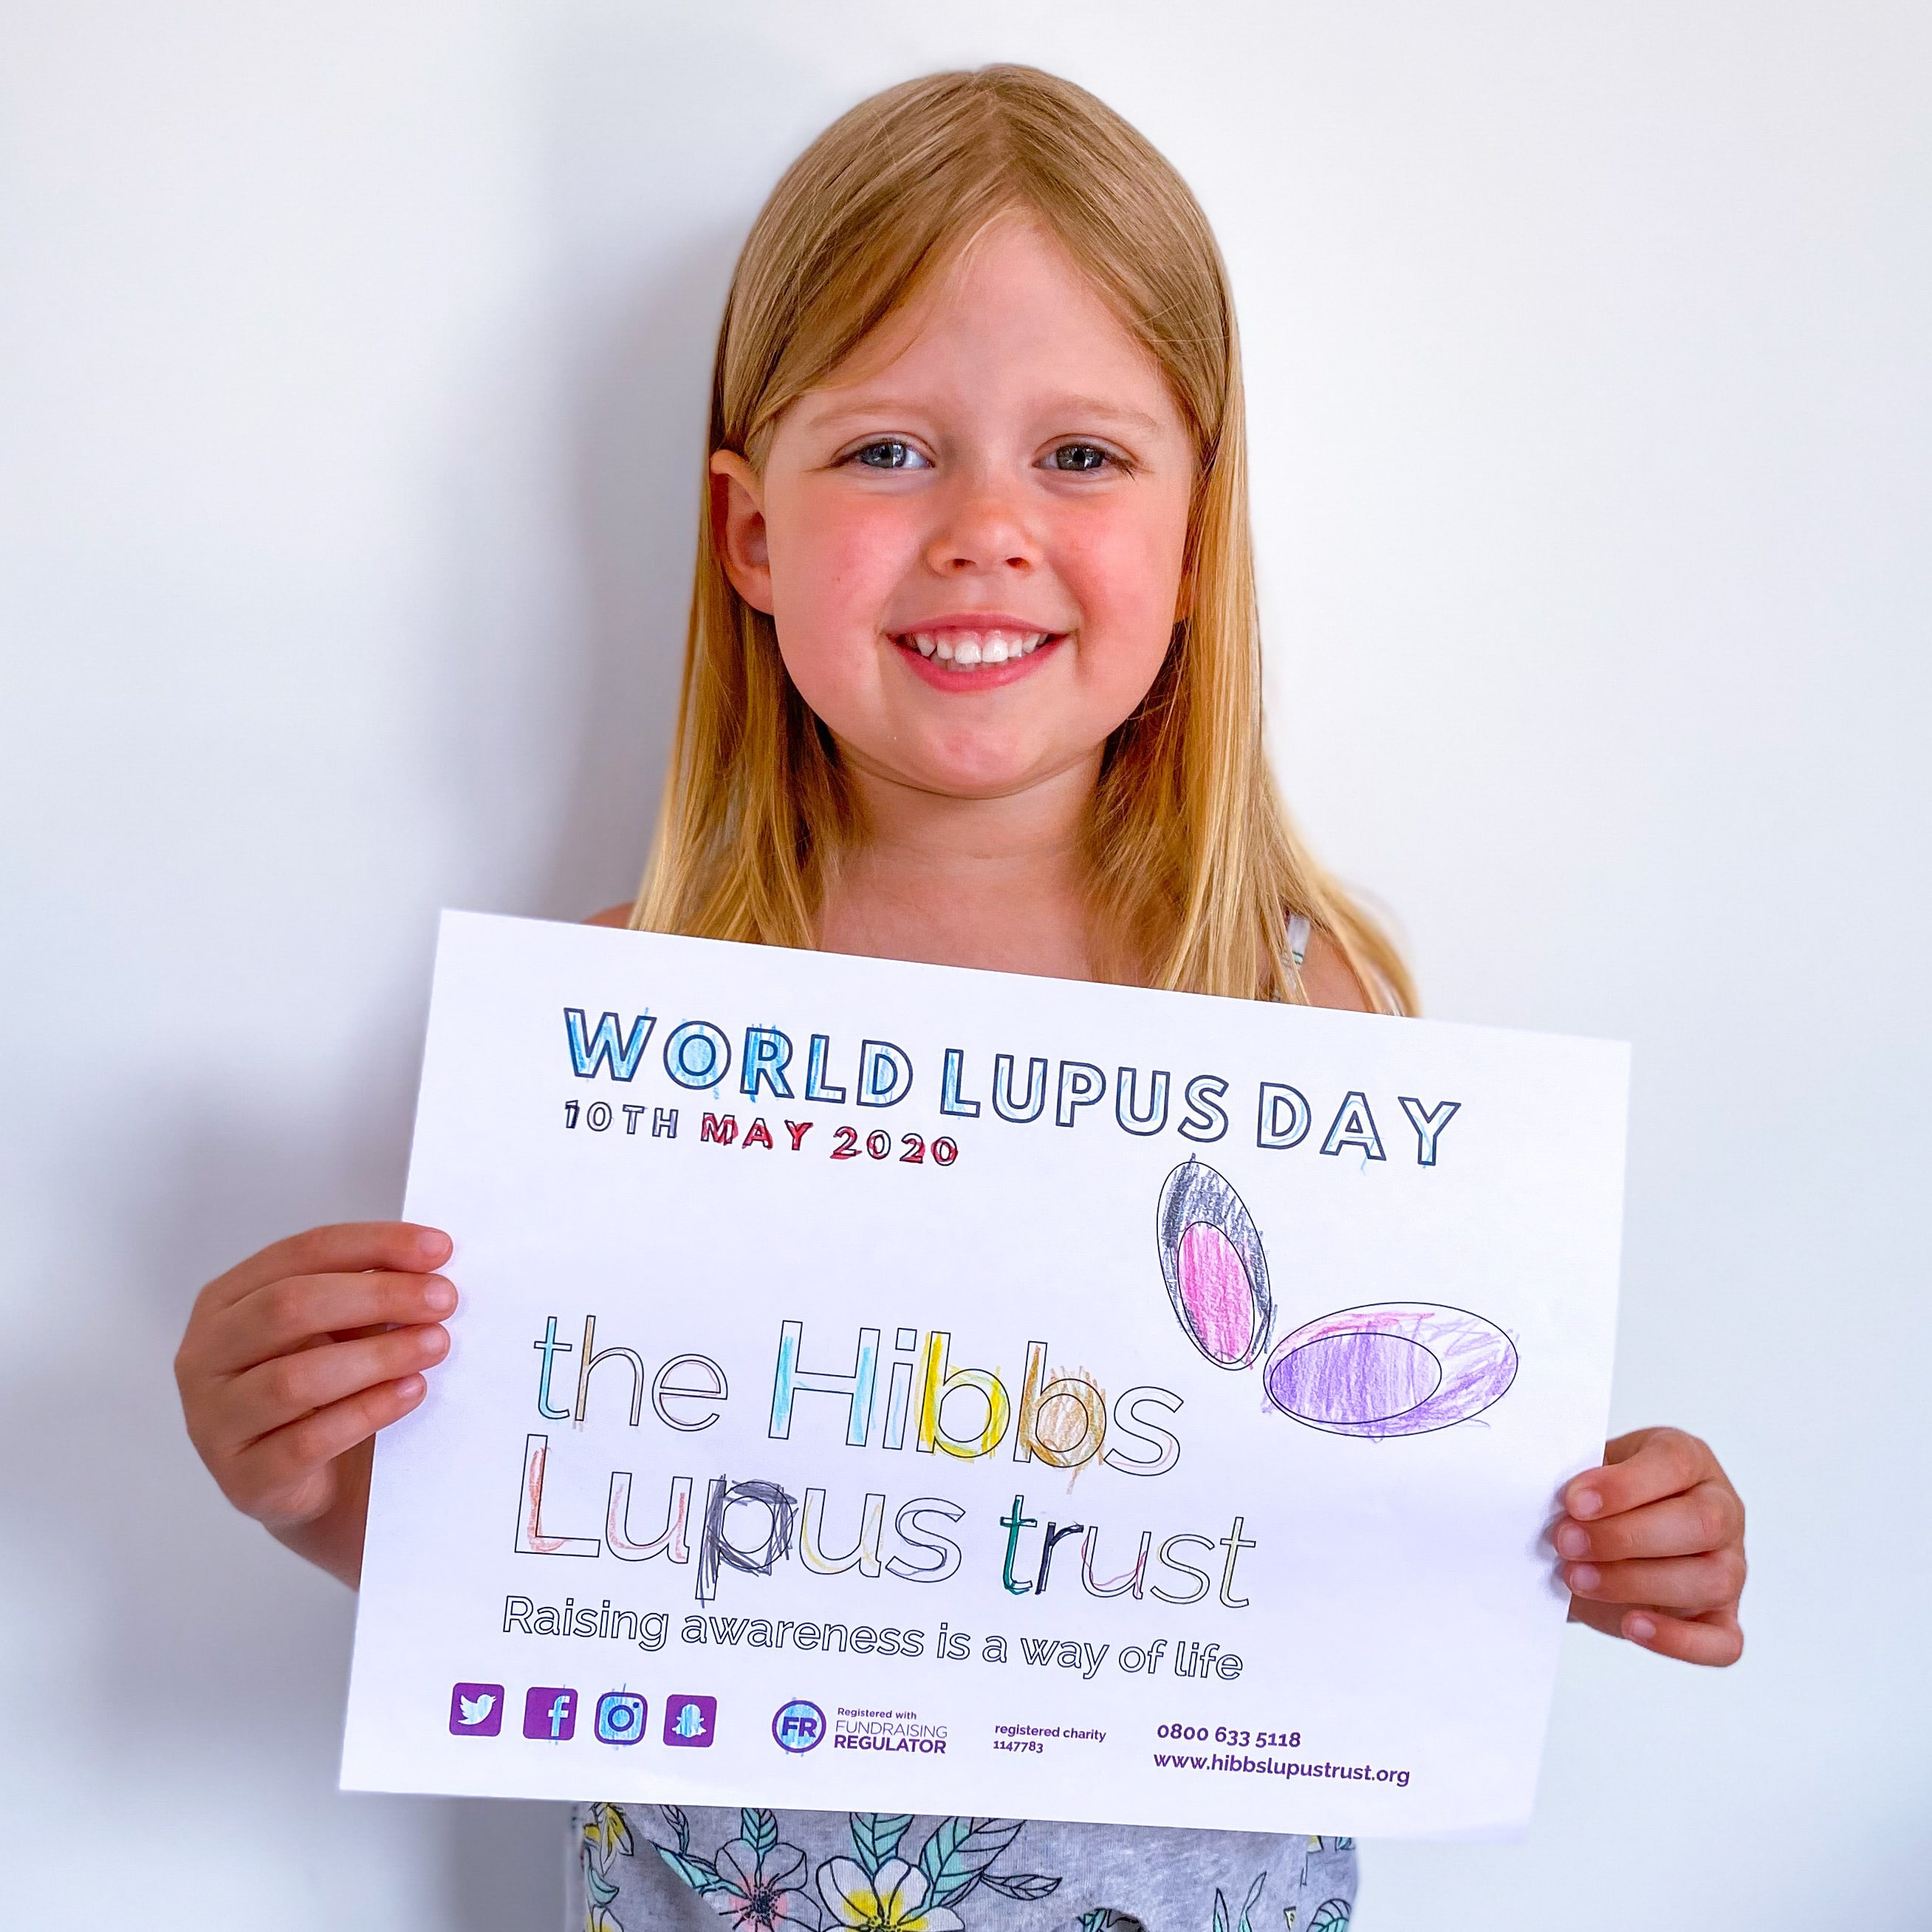 WORLD LUPUS DAY - The Hibbs Lupus Trust